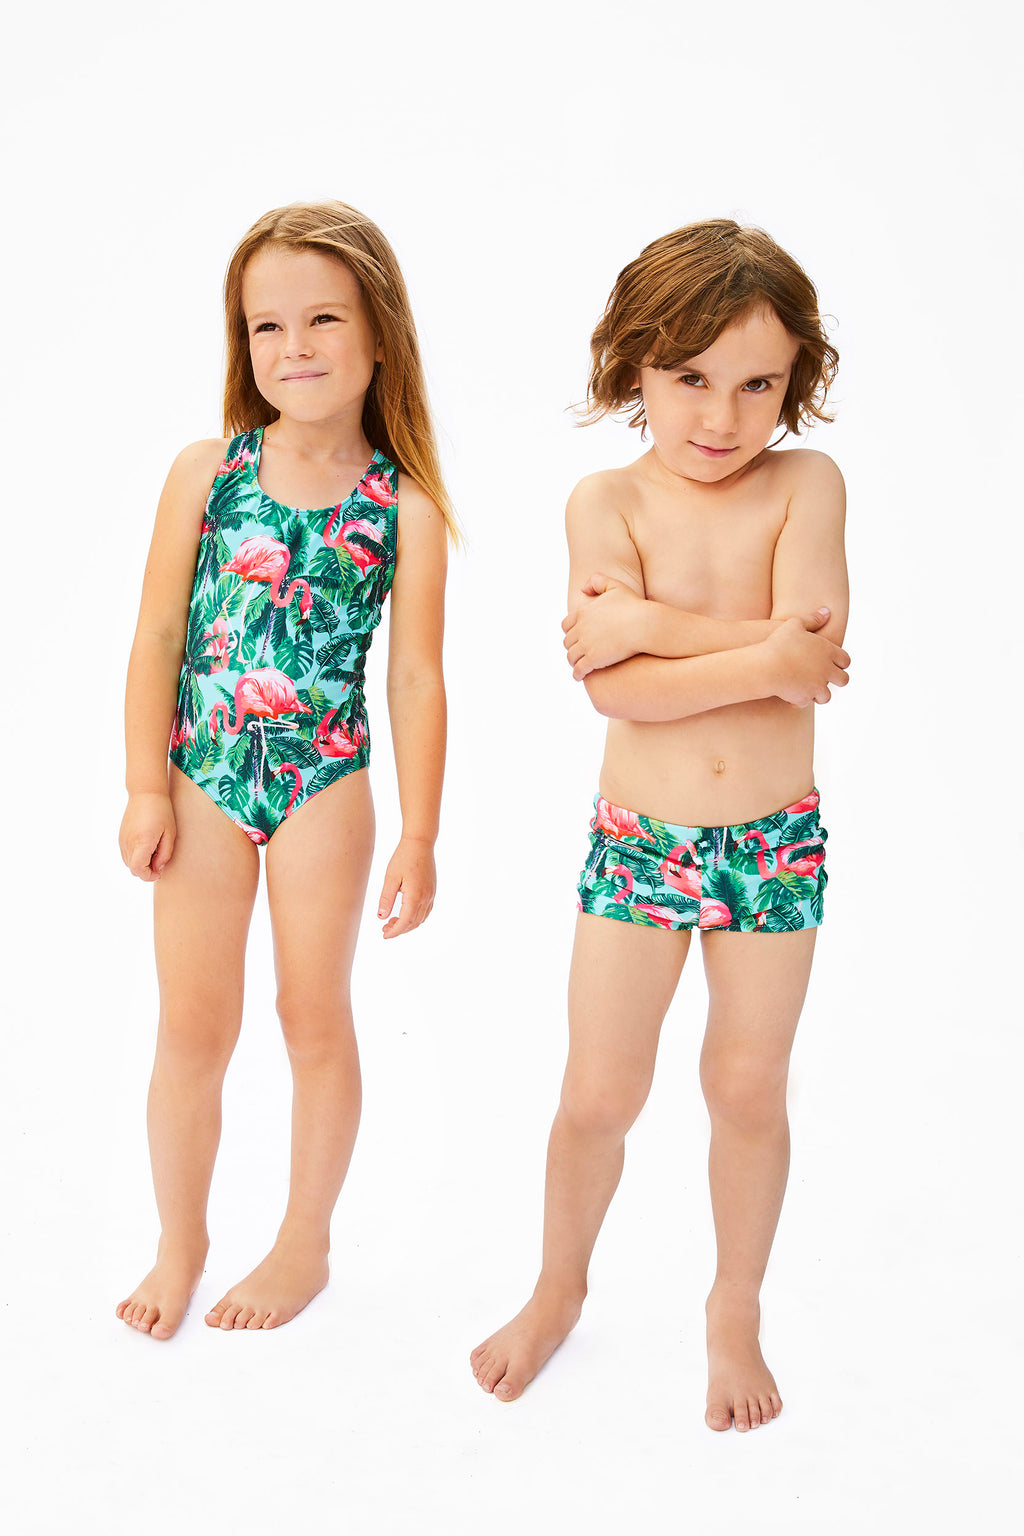 aqua and pink flamingo print swimsuits for kids, made in Canada by Bathing Belle Swimwear